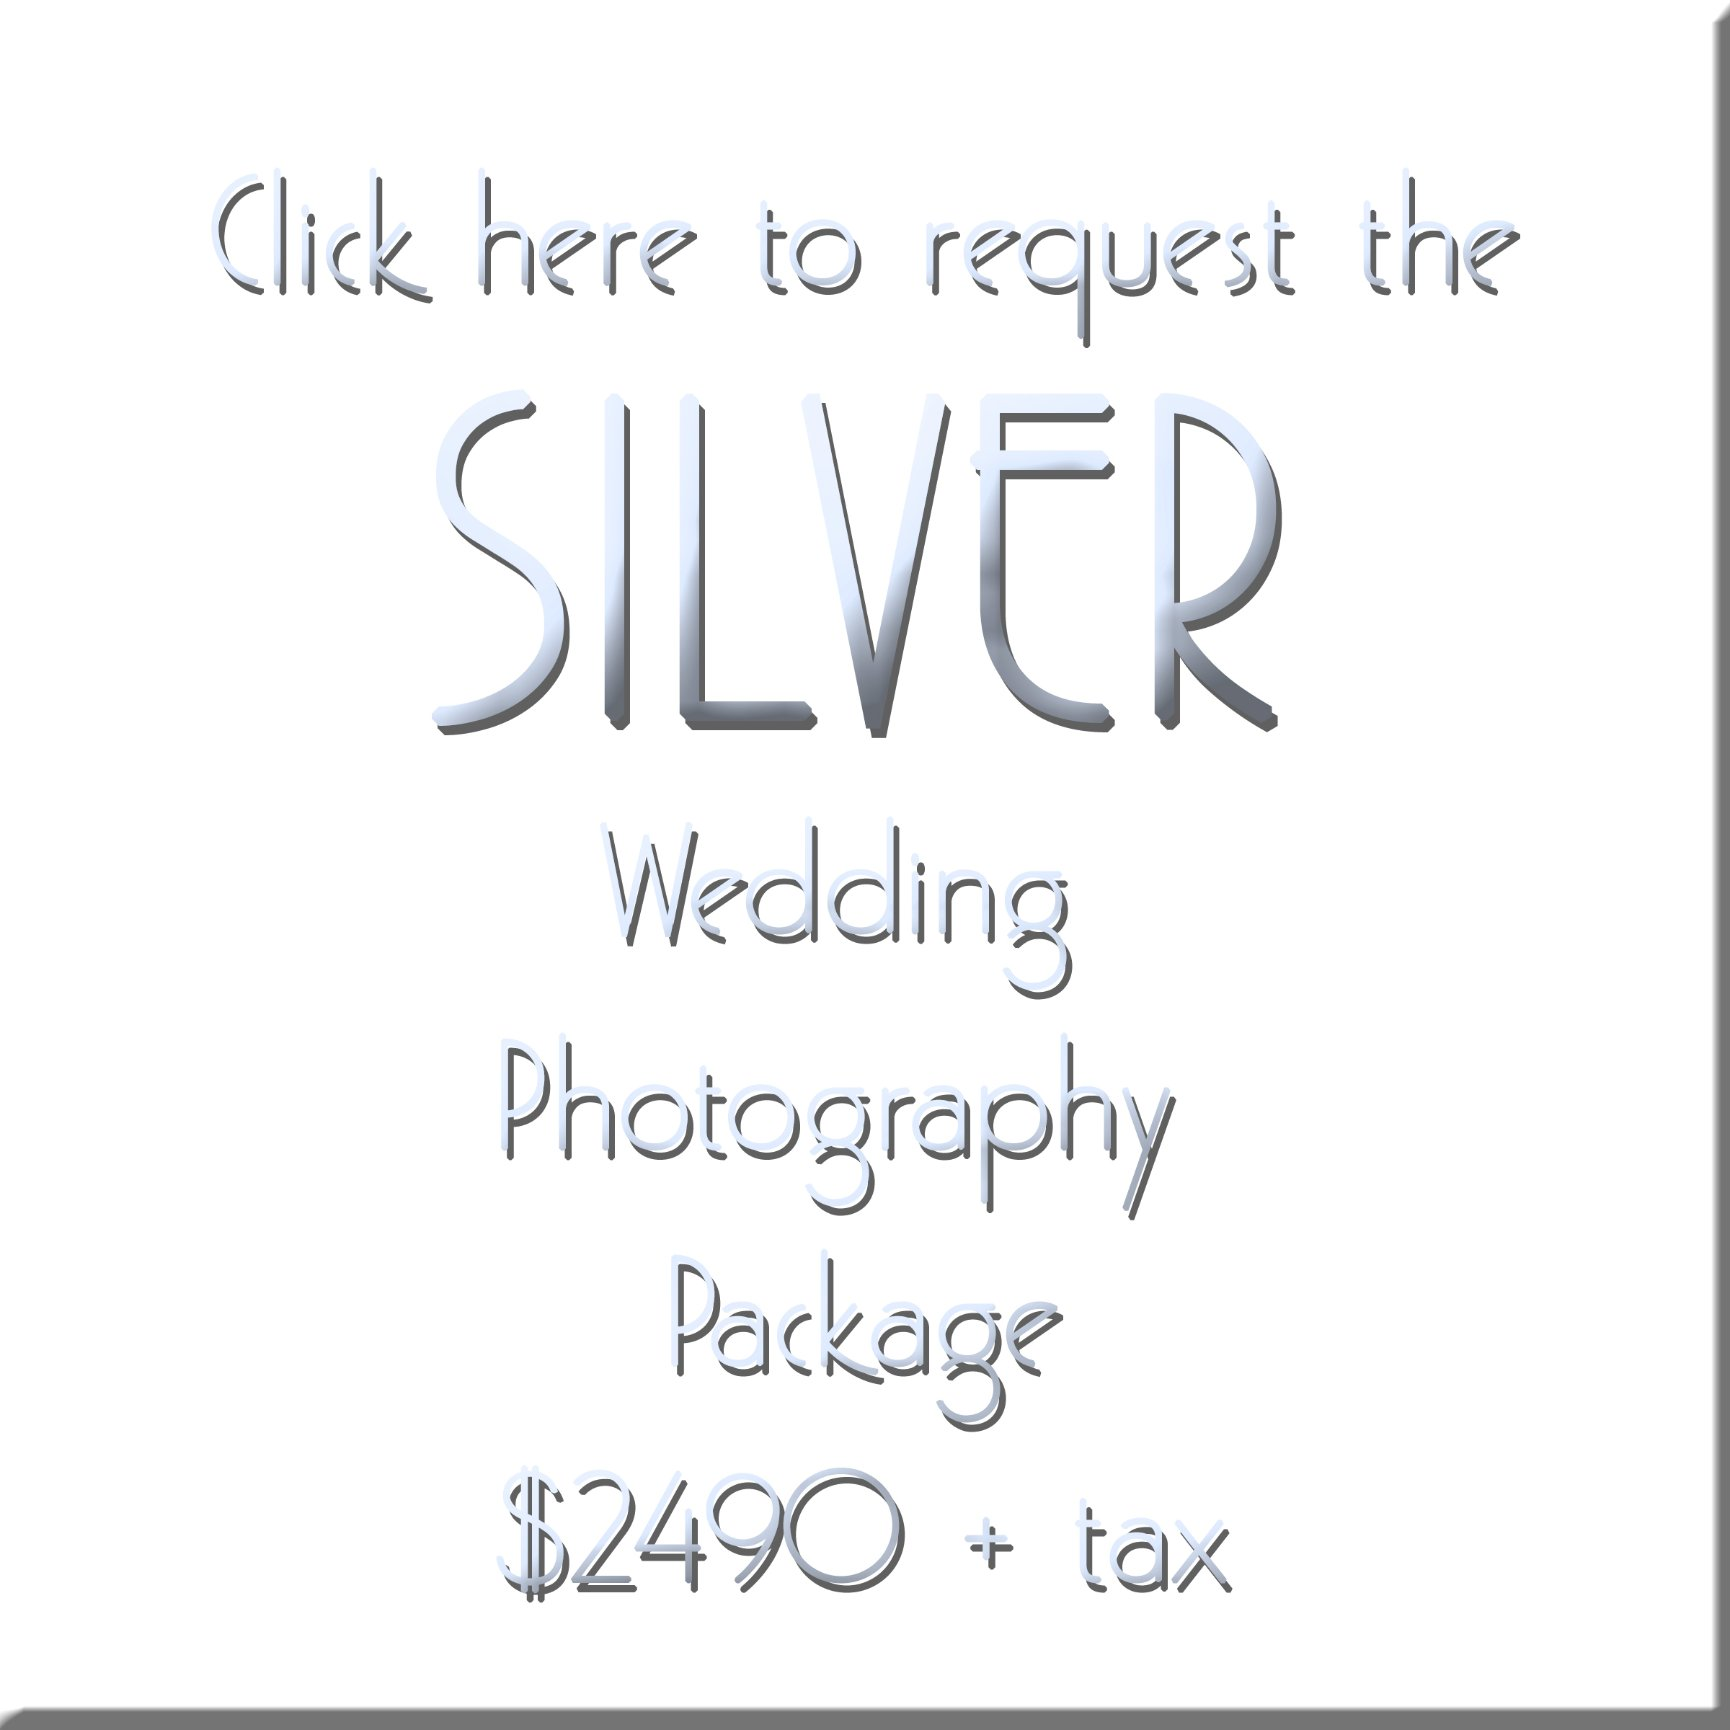 SILVER wedding photography pacakge form